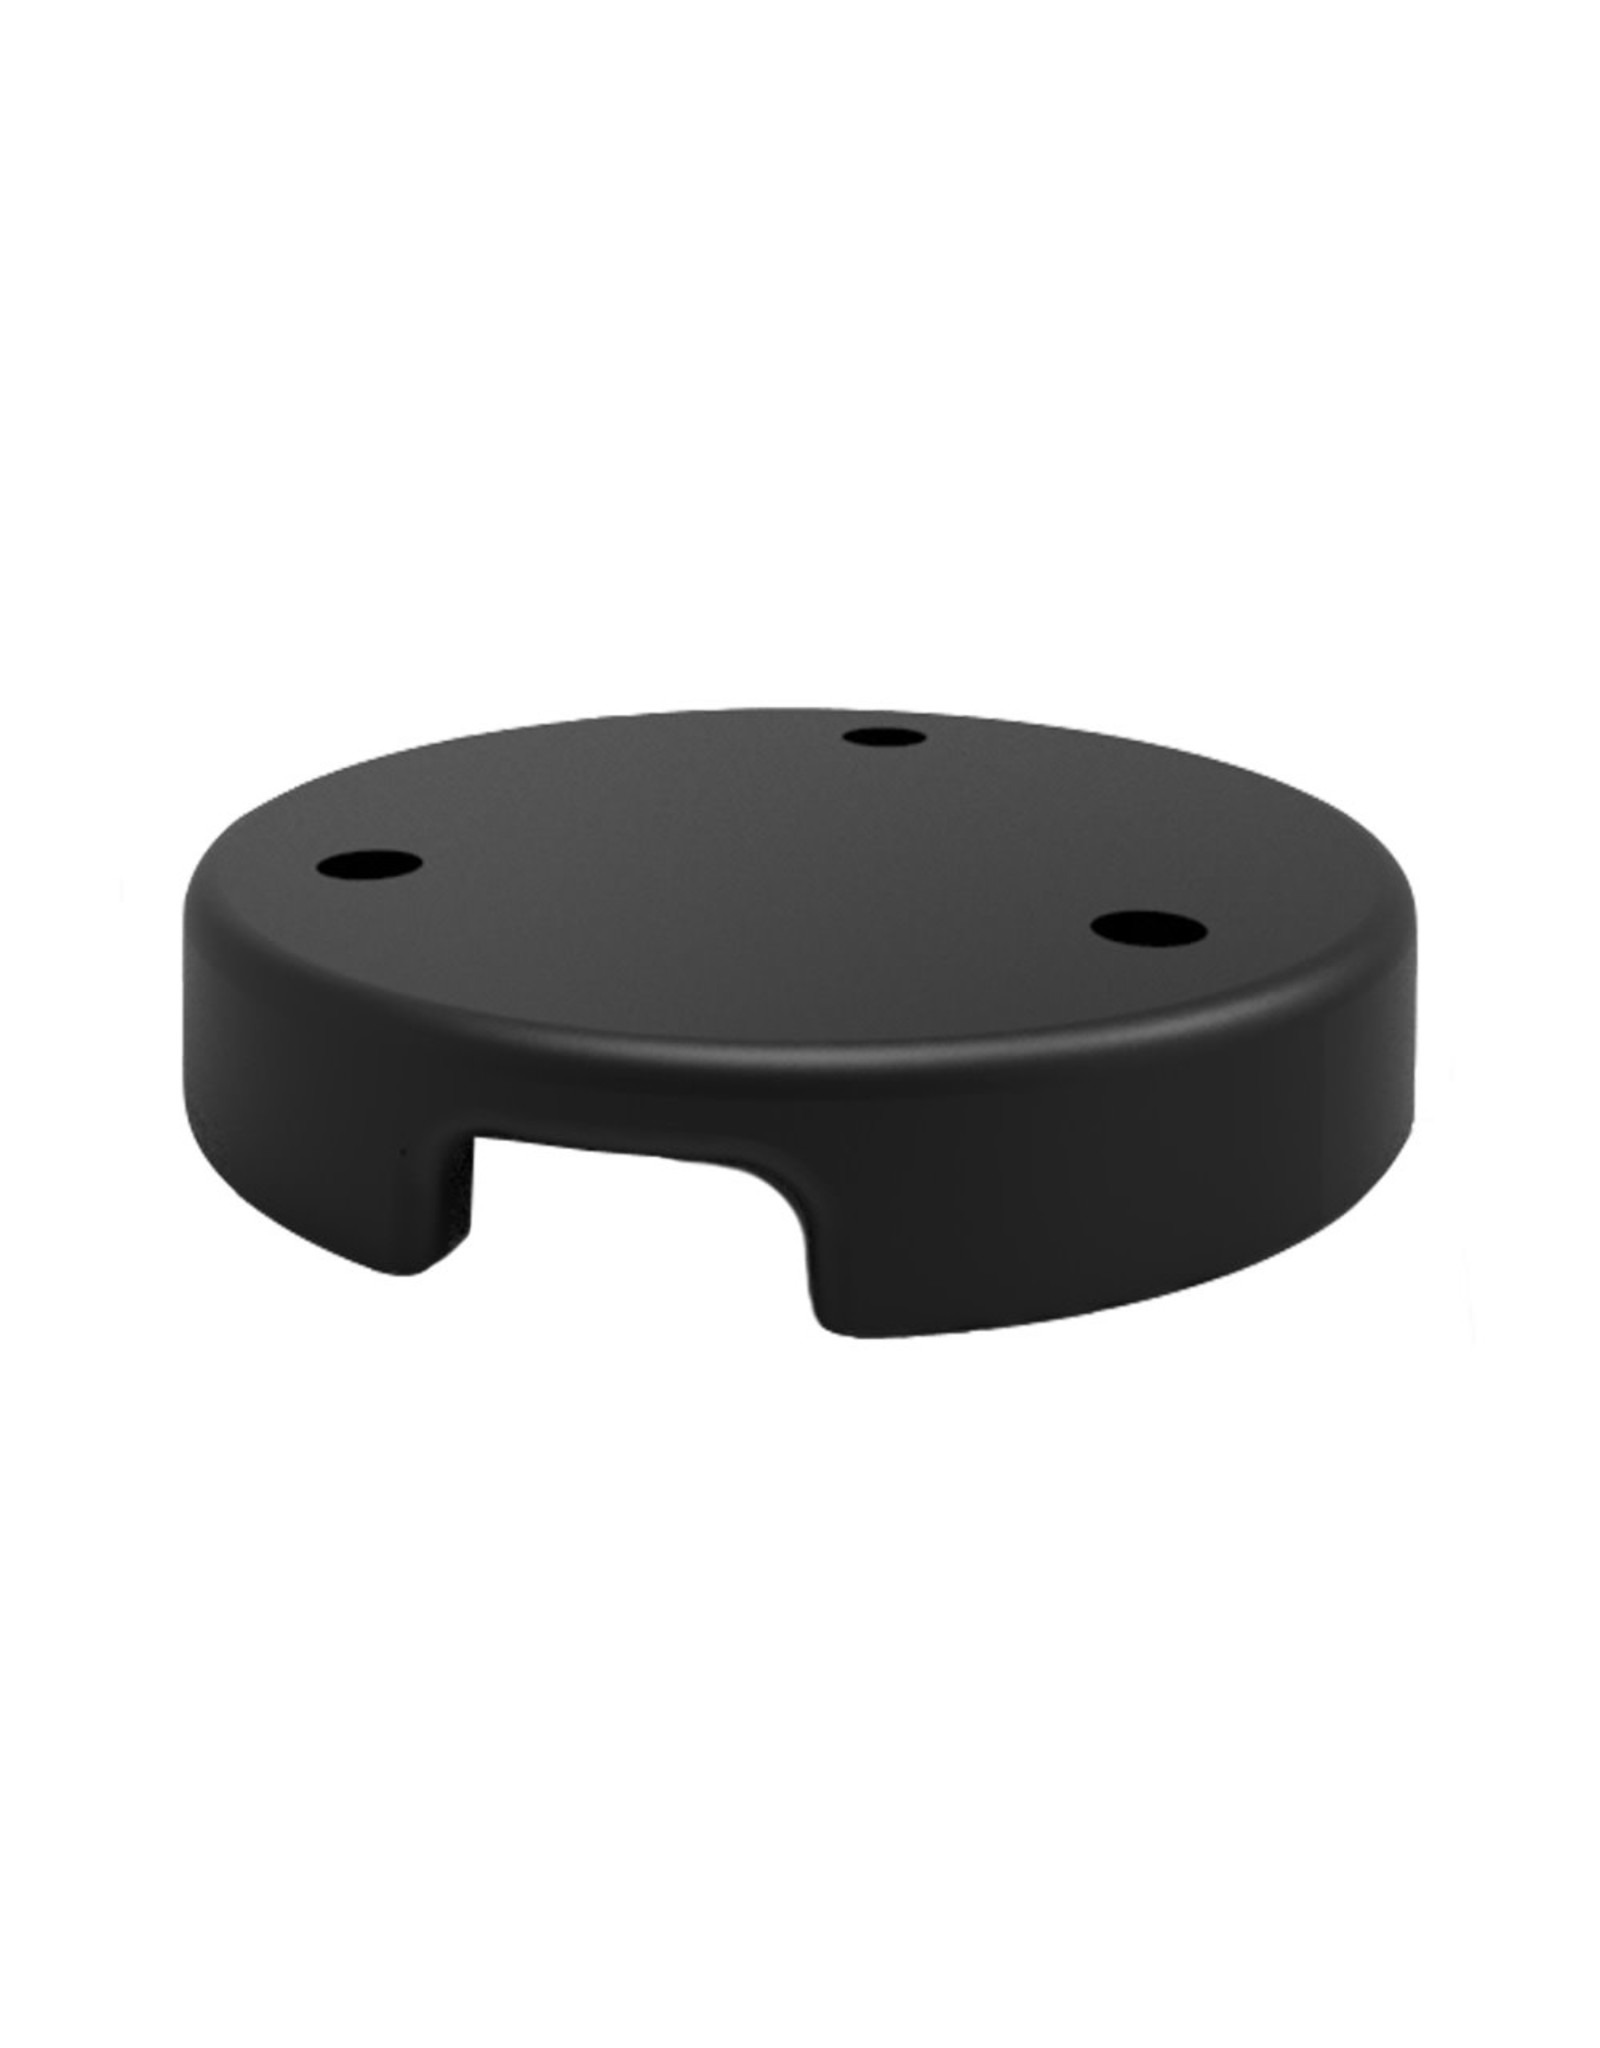 "RAM RAP-402 Large Cable Manager f/2.25"" Diameter Ball Bases"